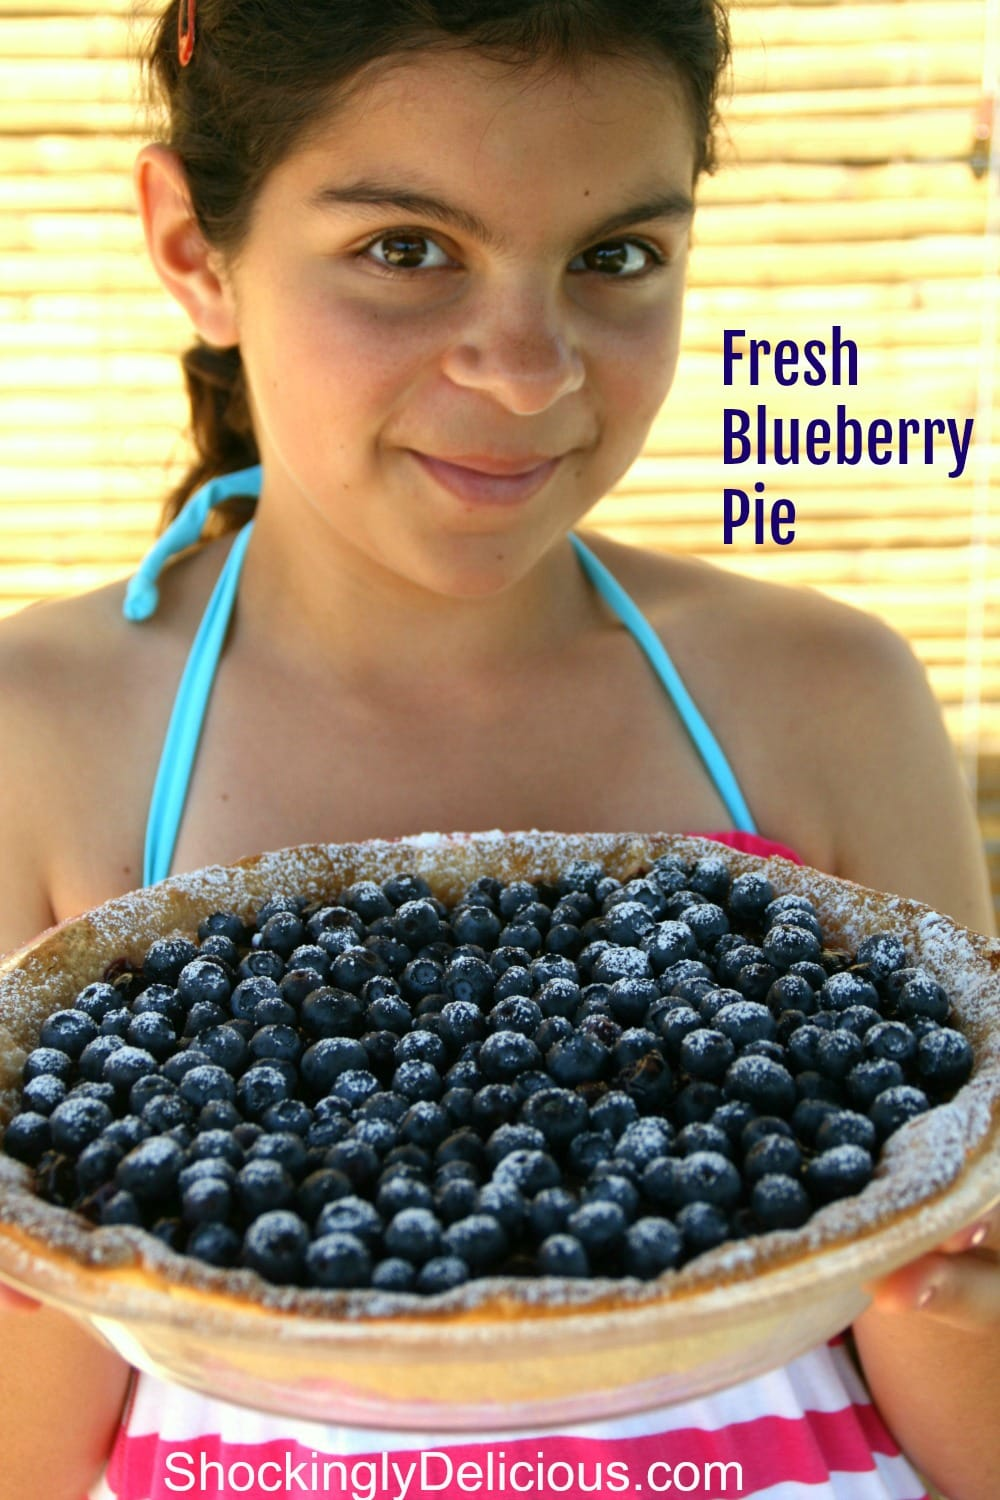 Young girl shows off a whole Fresh Blueberry Pie on ShockinglyDelicious.com